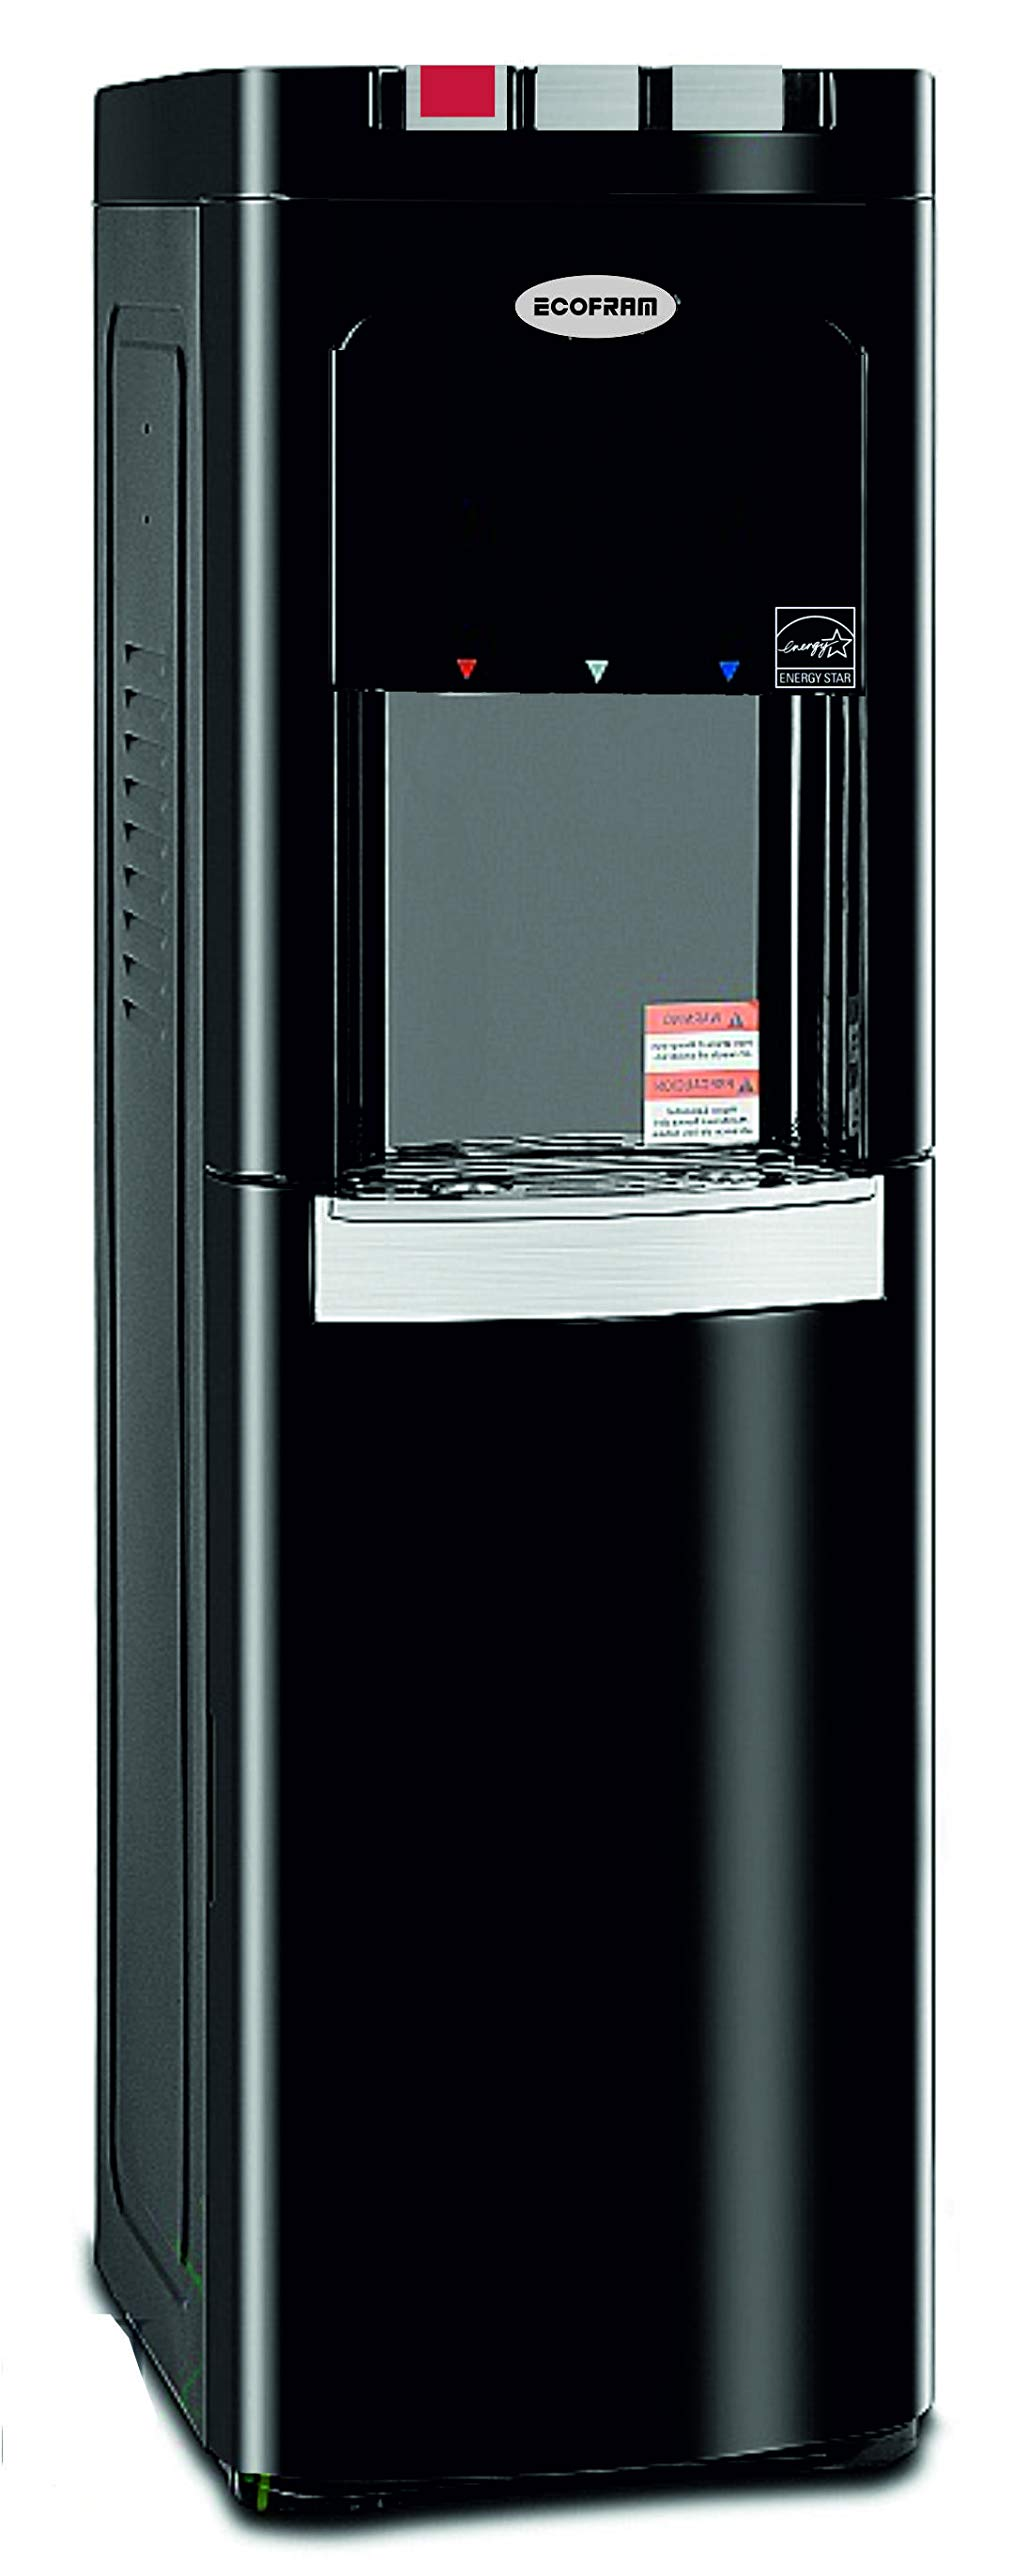 ECOFRAM Commercial Water Cooler, Tall Top Loading Hot, Cook and Cold Water Dispenser, Black & Stainless Still